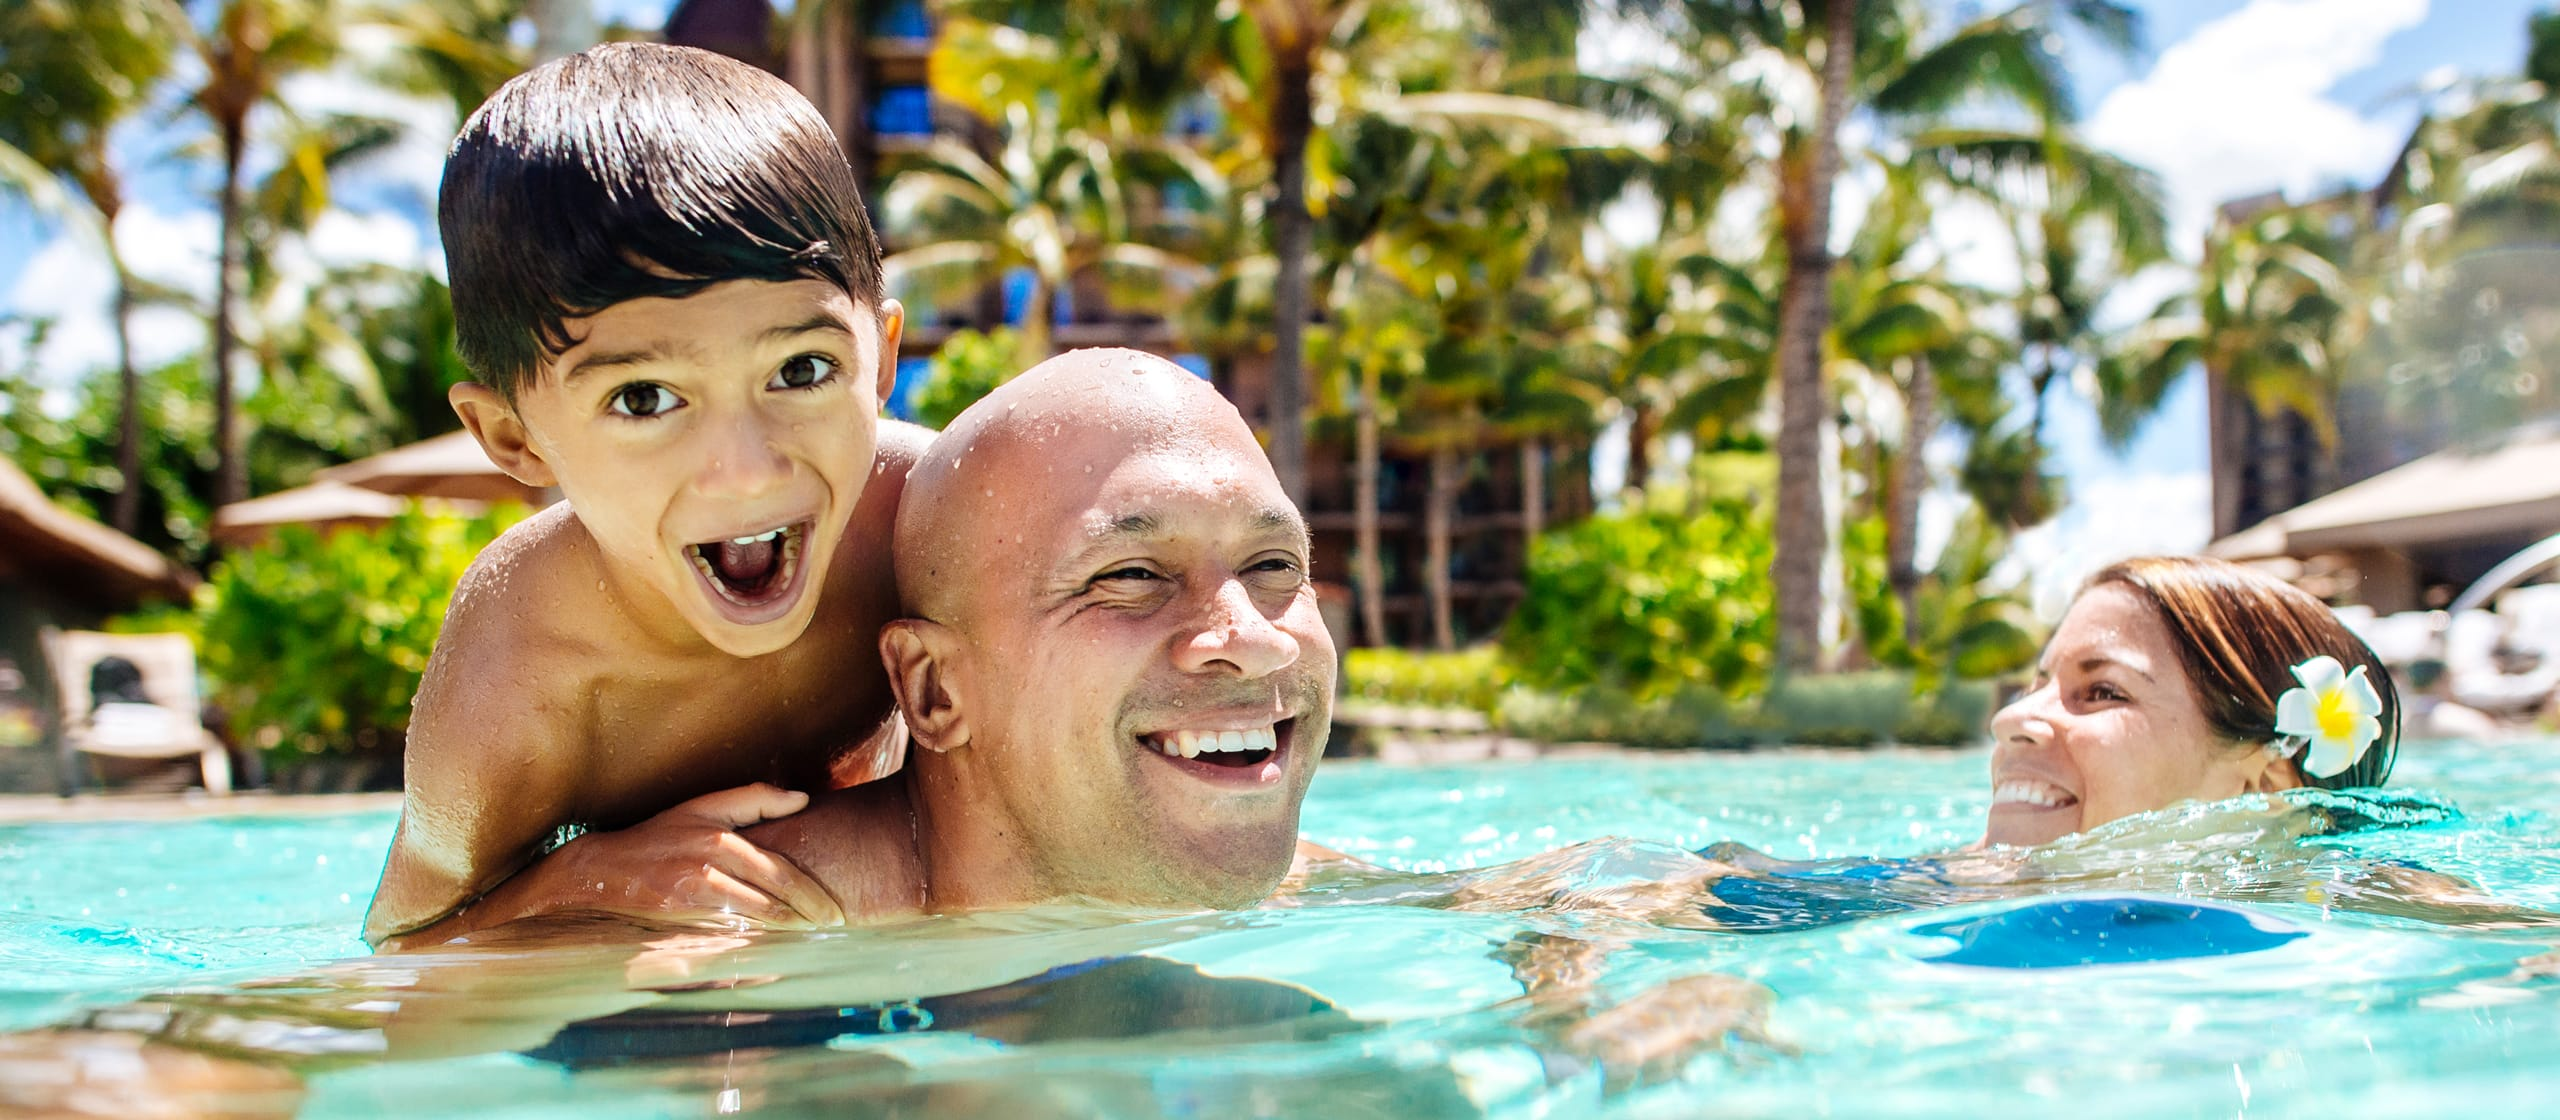 In sparkling blue water, a mother and father, his young son perched on his back, smile as they enjoy swimming together